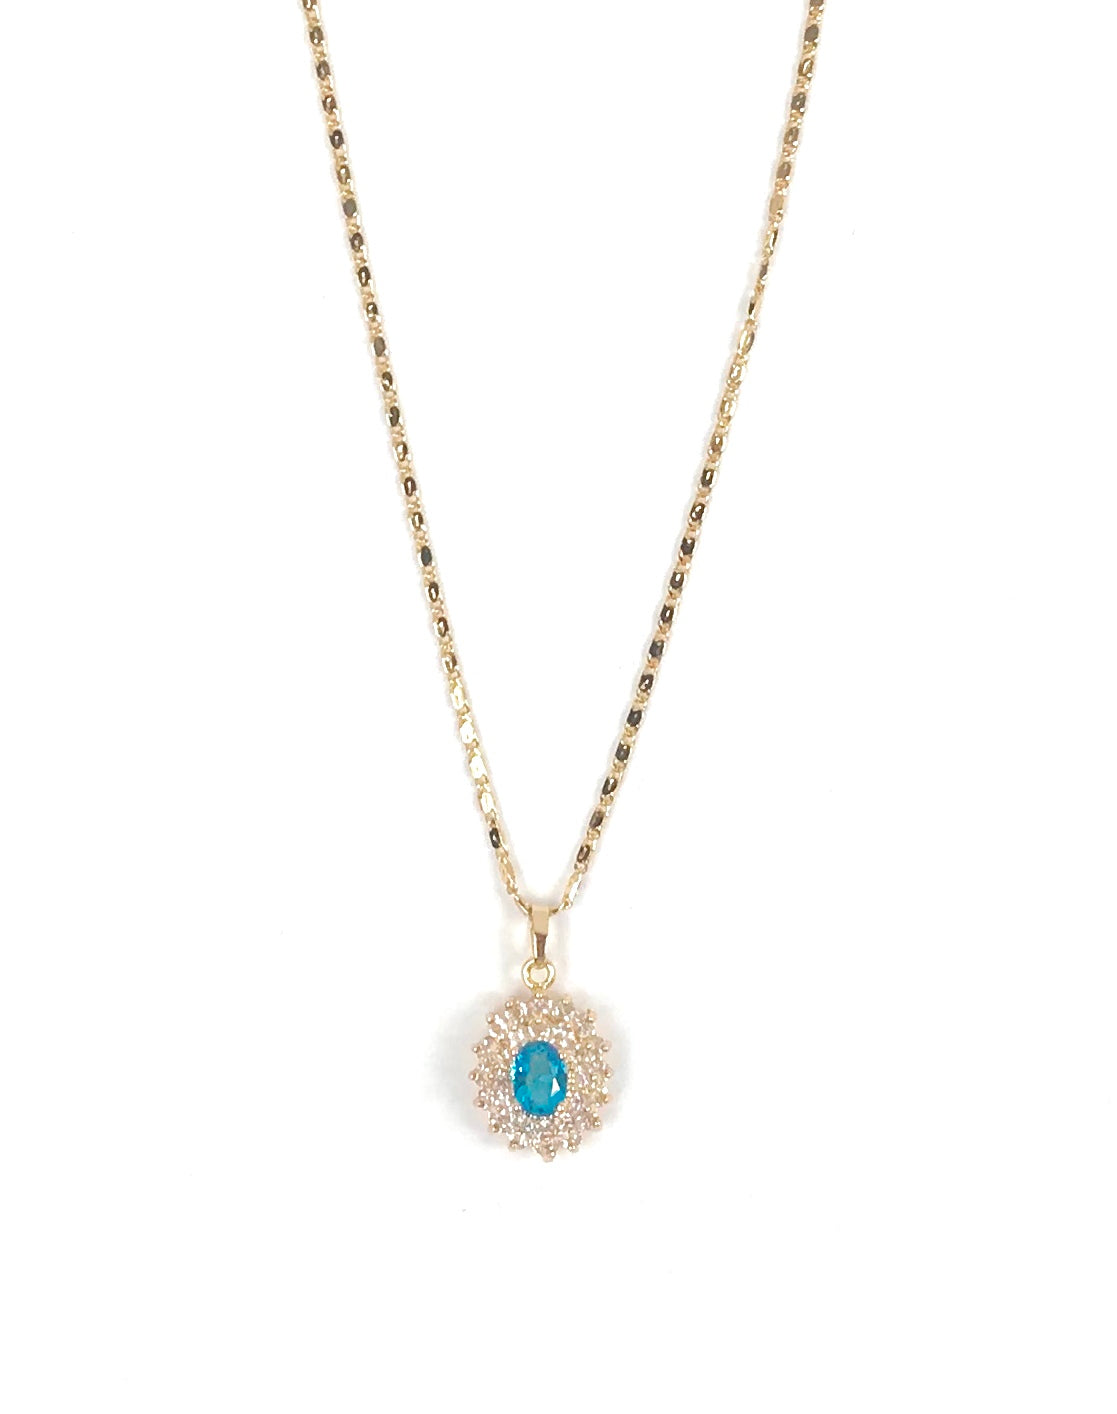 Gold and Blue Snowflake Pendant Necklace